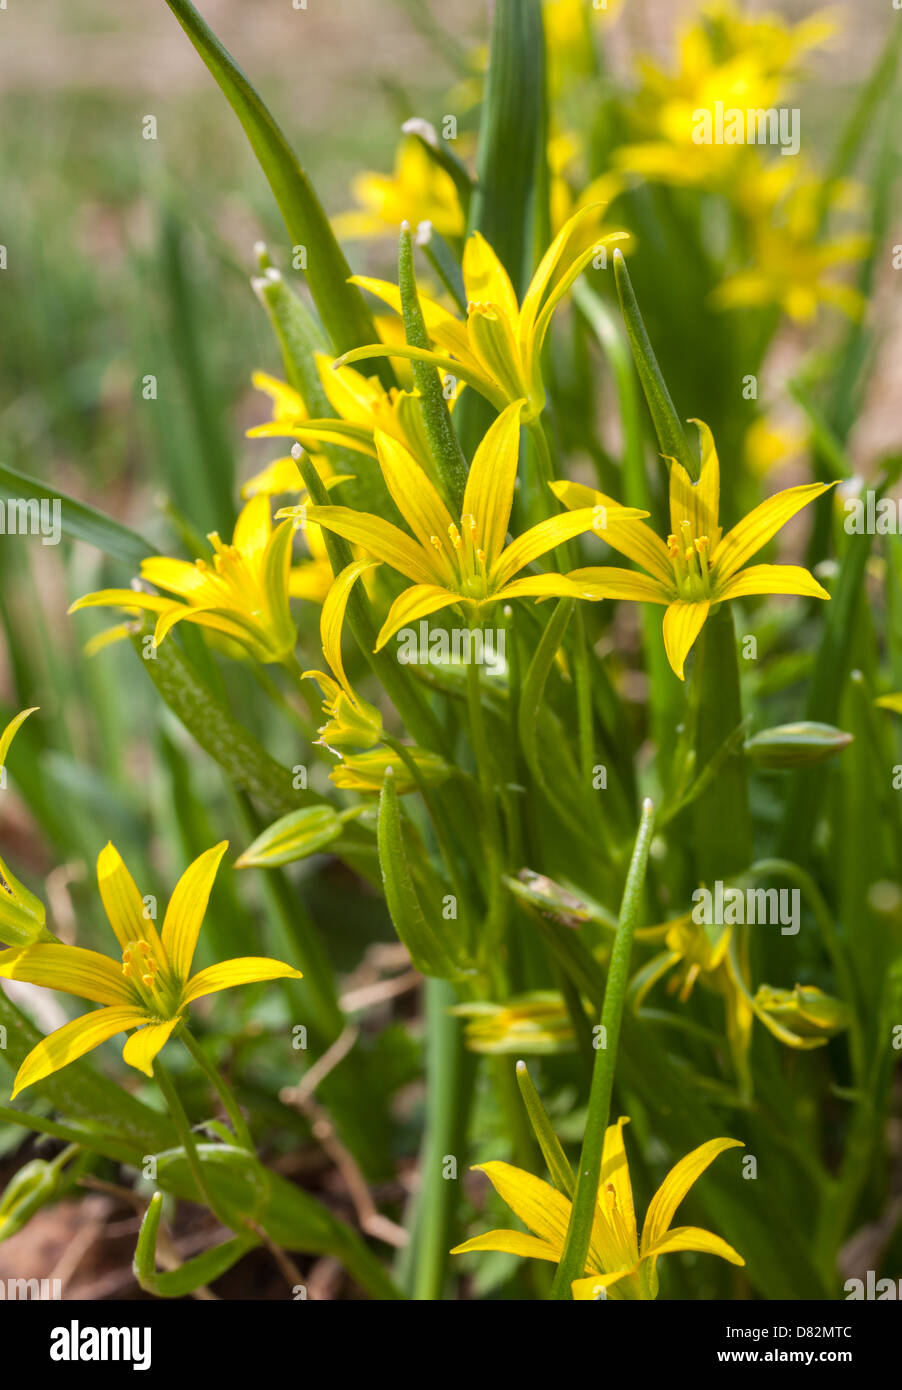 Gagea Is Spring Flowers Stock Photos Gagea Is Spring Flowers Stock